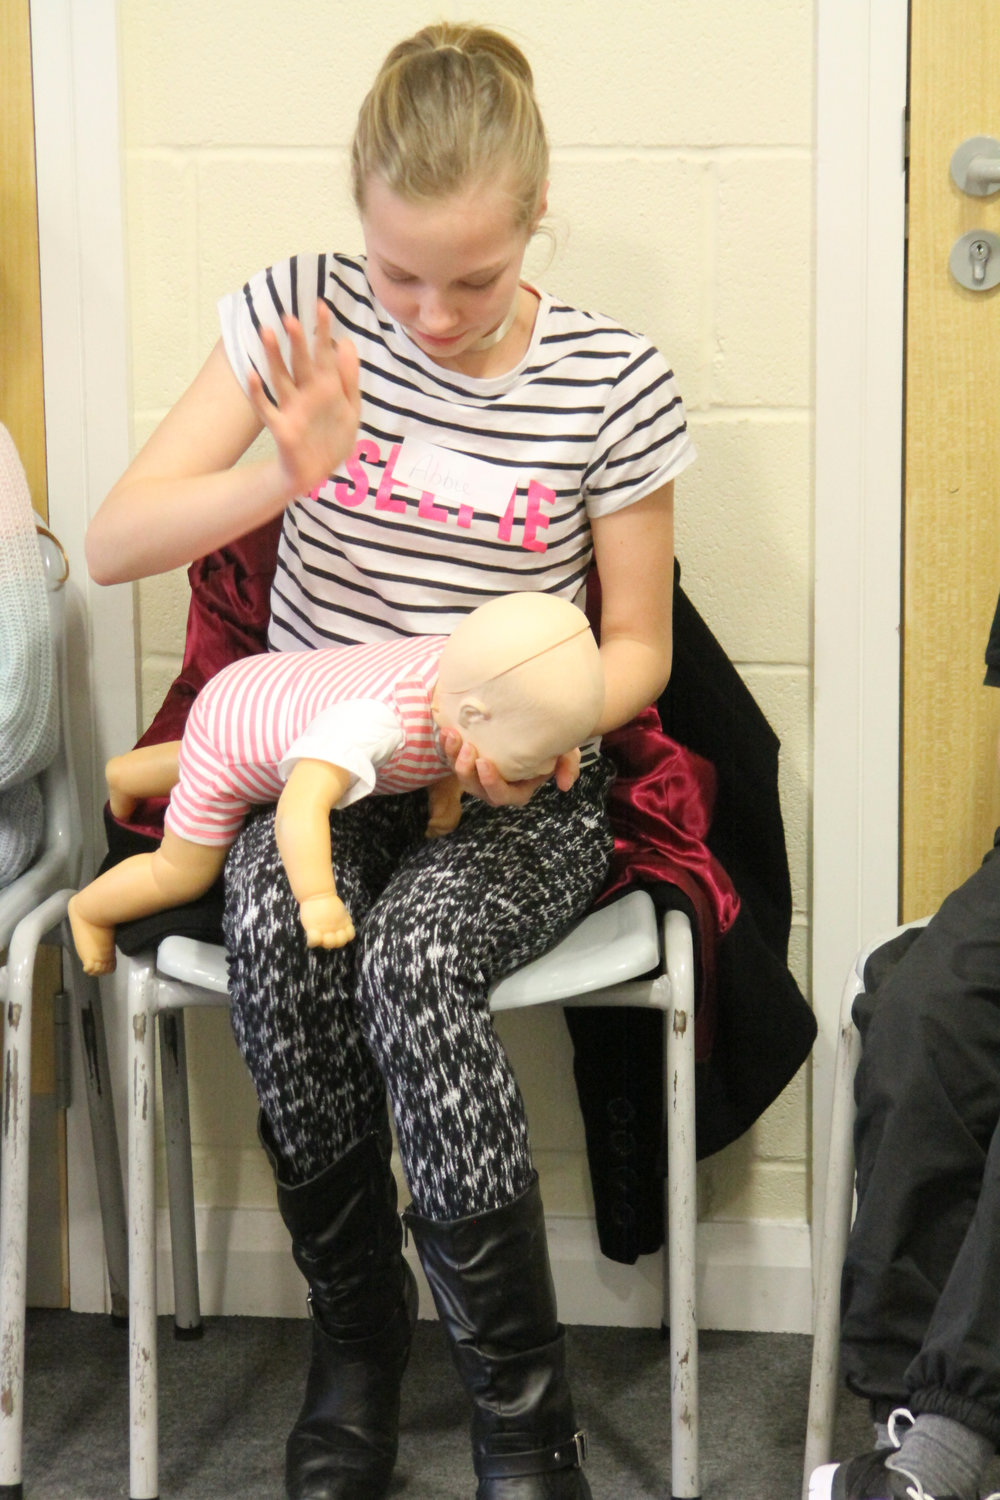 Abbie (11) practising what to do with a choking infant.